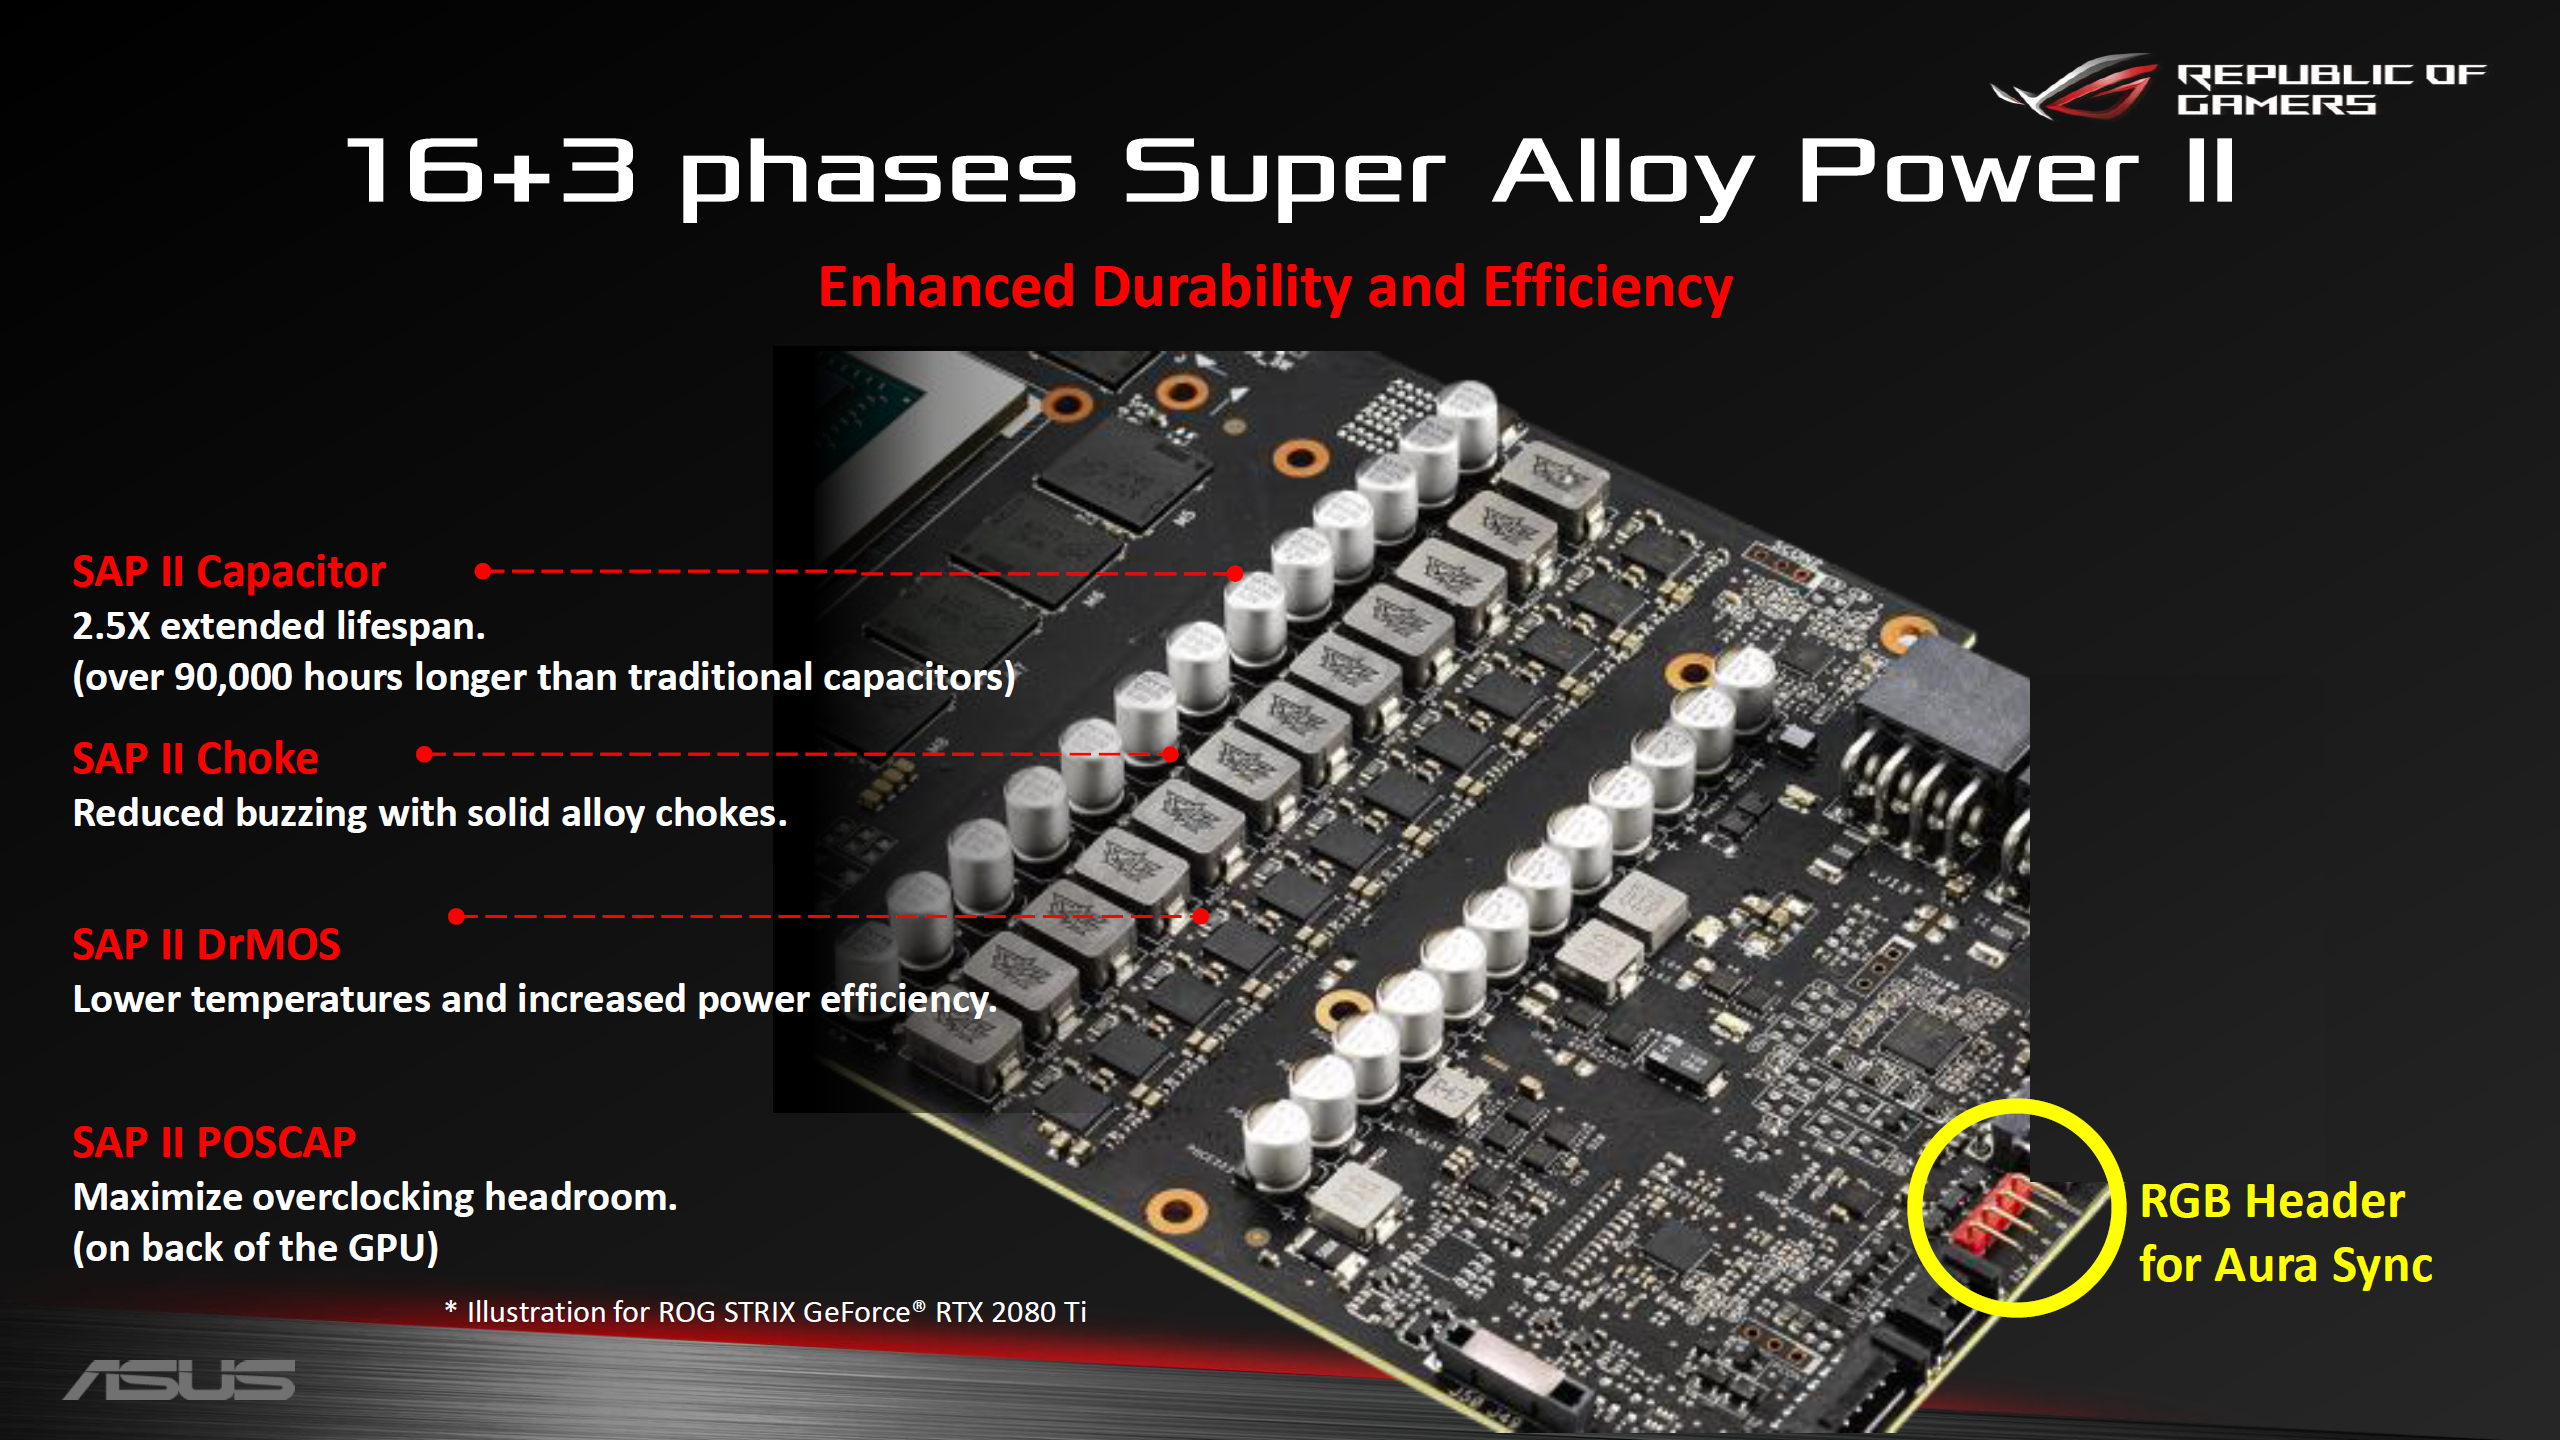 Asus Rog Strix Geforce Rtx 2080 Ti Overview 3 Way Switch Buzzing In Addition To The Custom Design Comes With A Non Reference Pcb Featuring 16 Phase That Features Higher